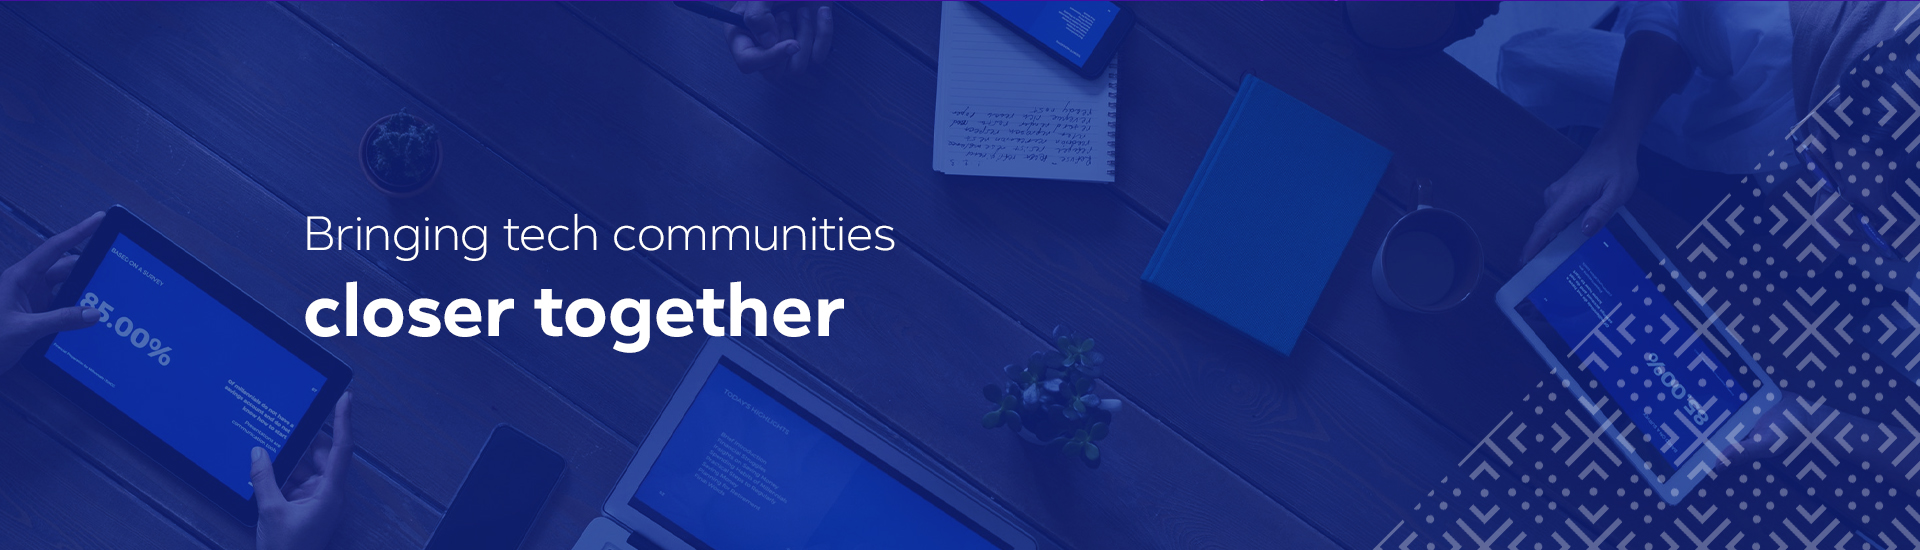 Bringing tech communities closer together.